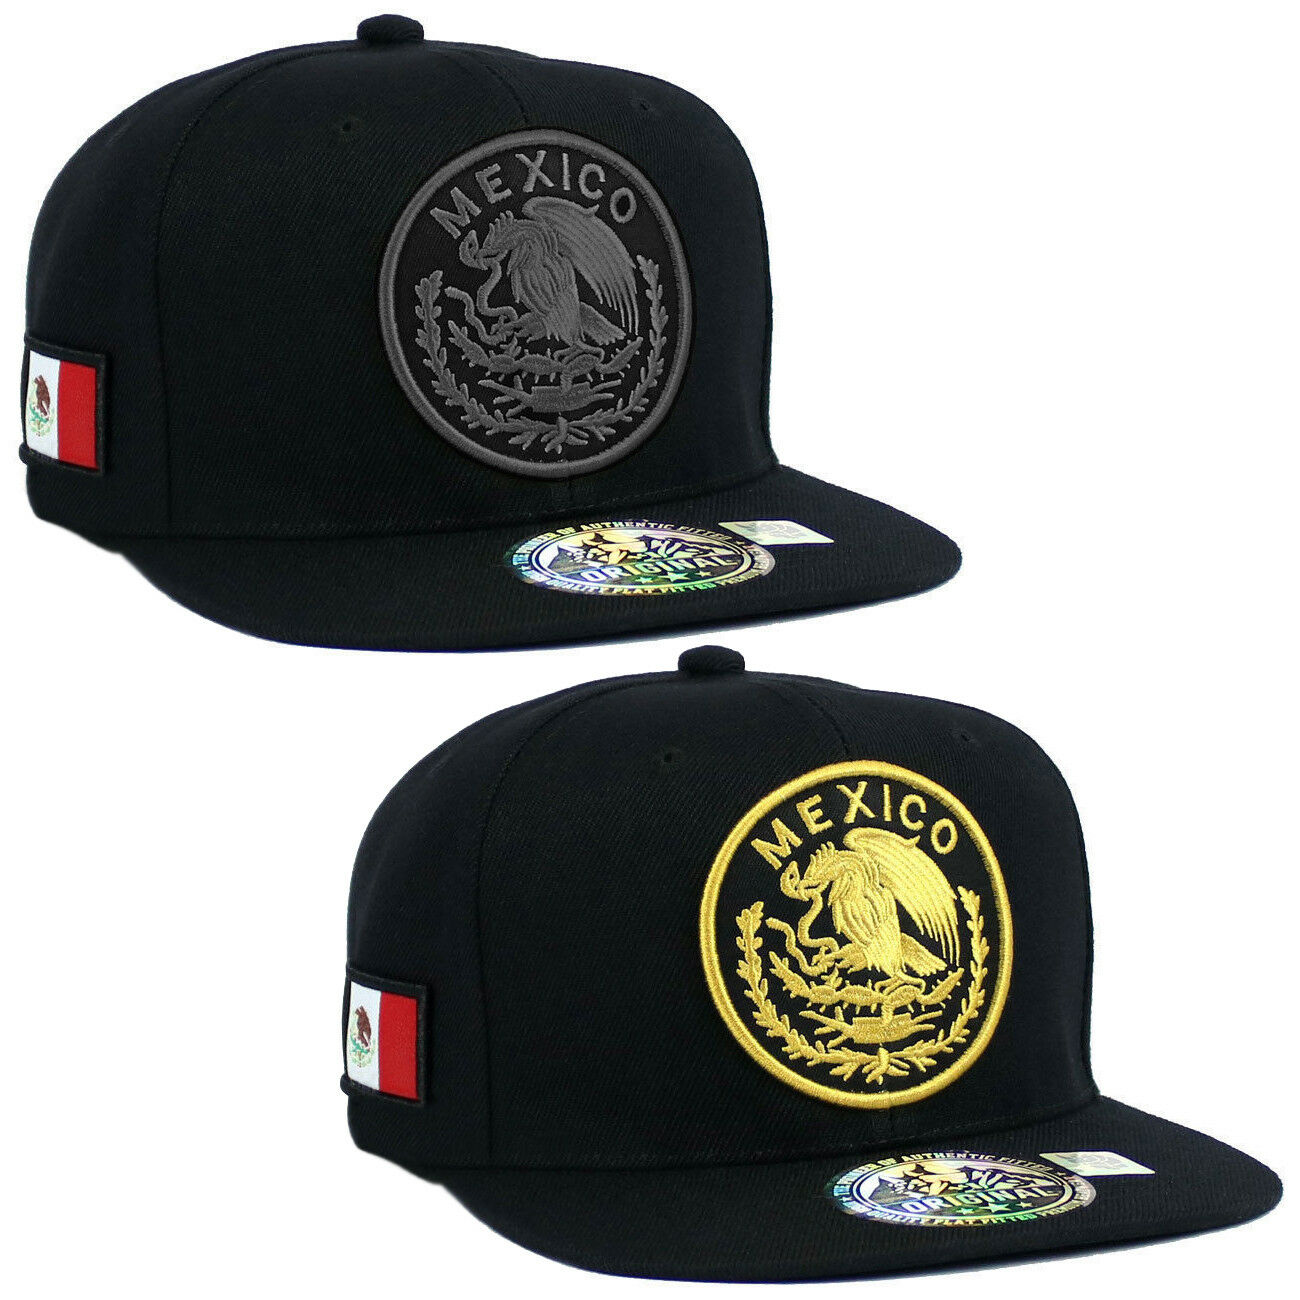 MEXICAN hat cap Snapback MEXICO Federal Logo Embroidered Bas